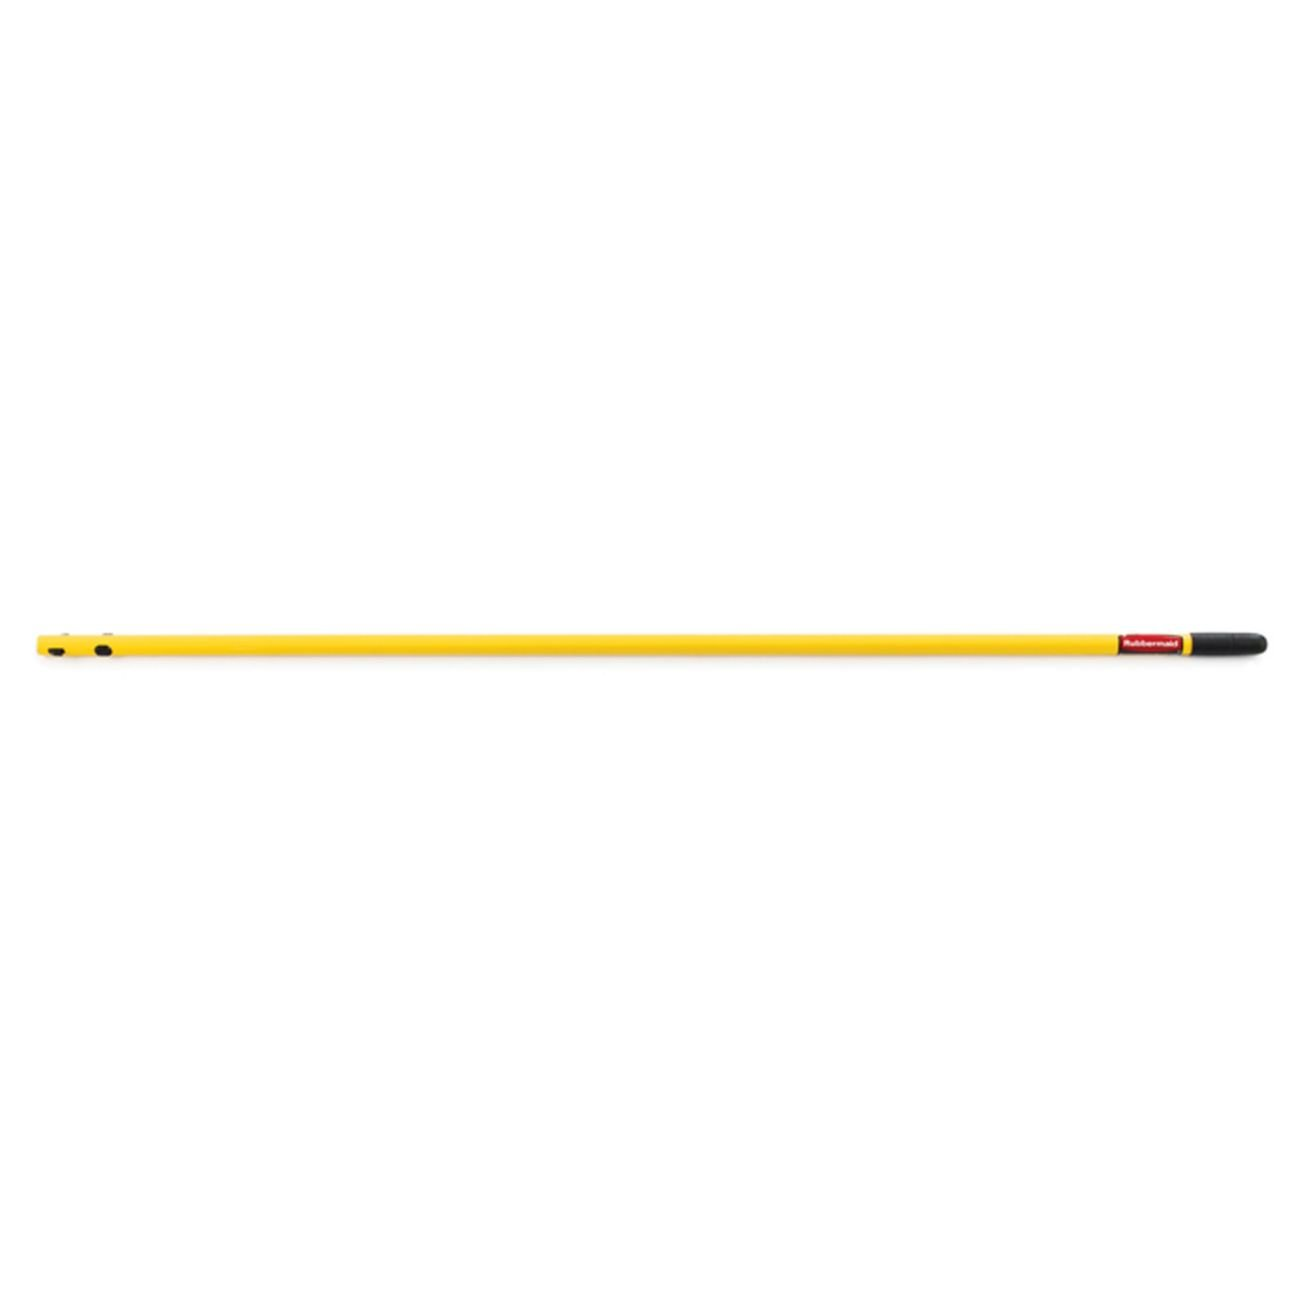 Rubbermaid FGQ74900YL00 Standard Quick-Connect Steel Mop Handle, Yellow (Pack of 6)